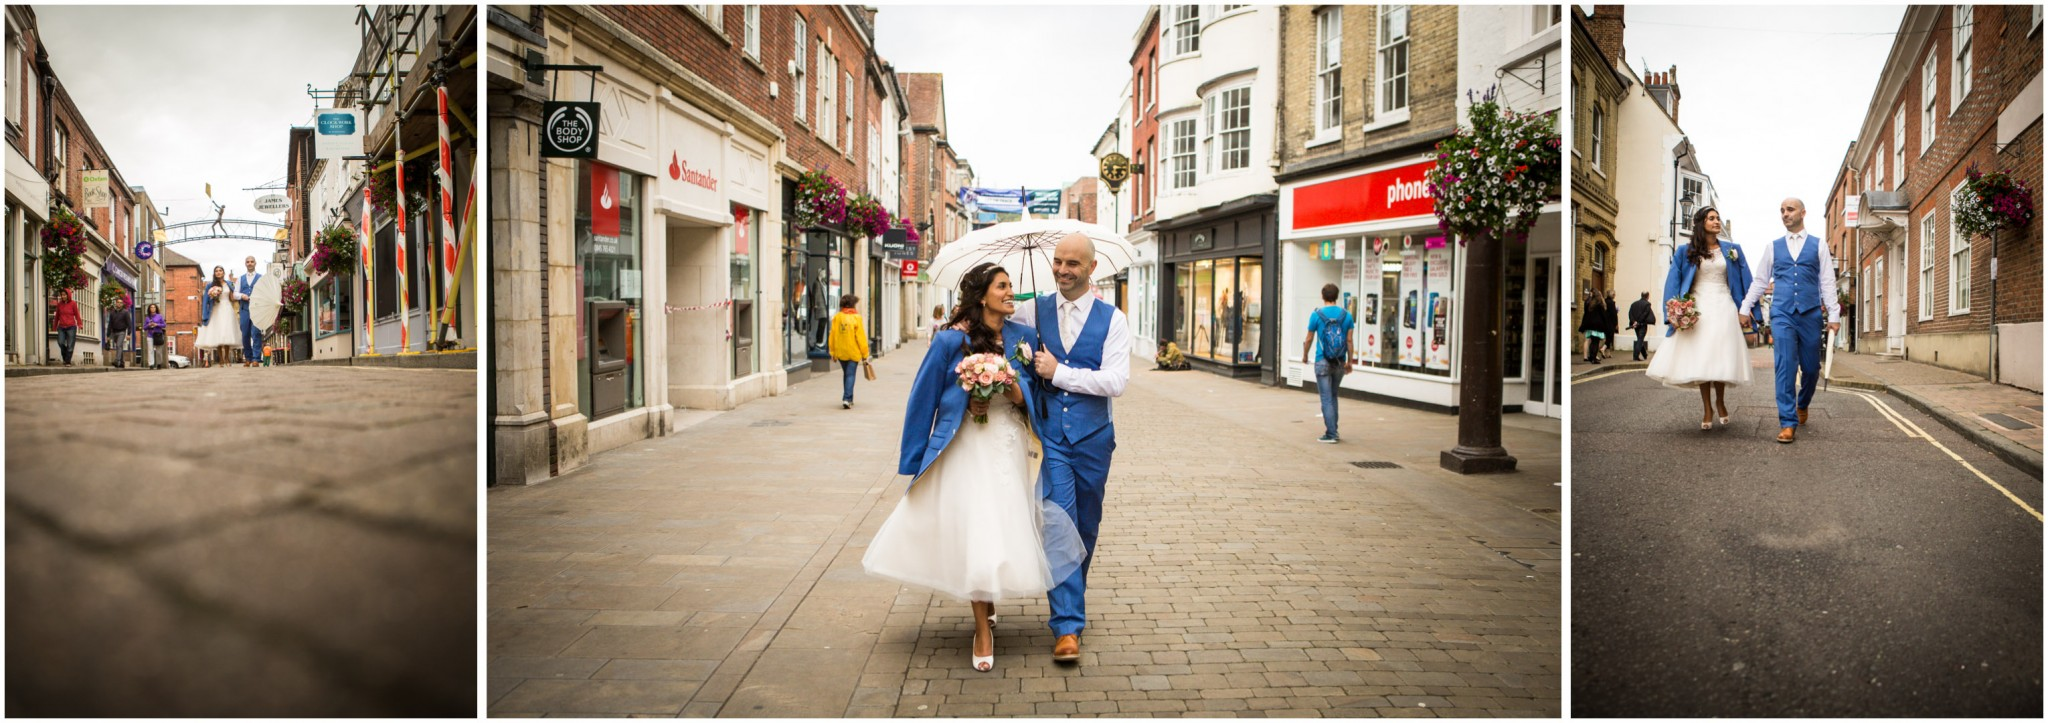 winchester-basing-room-wedding-photography-037